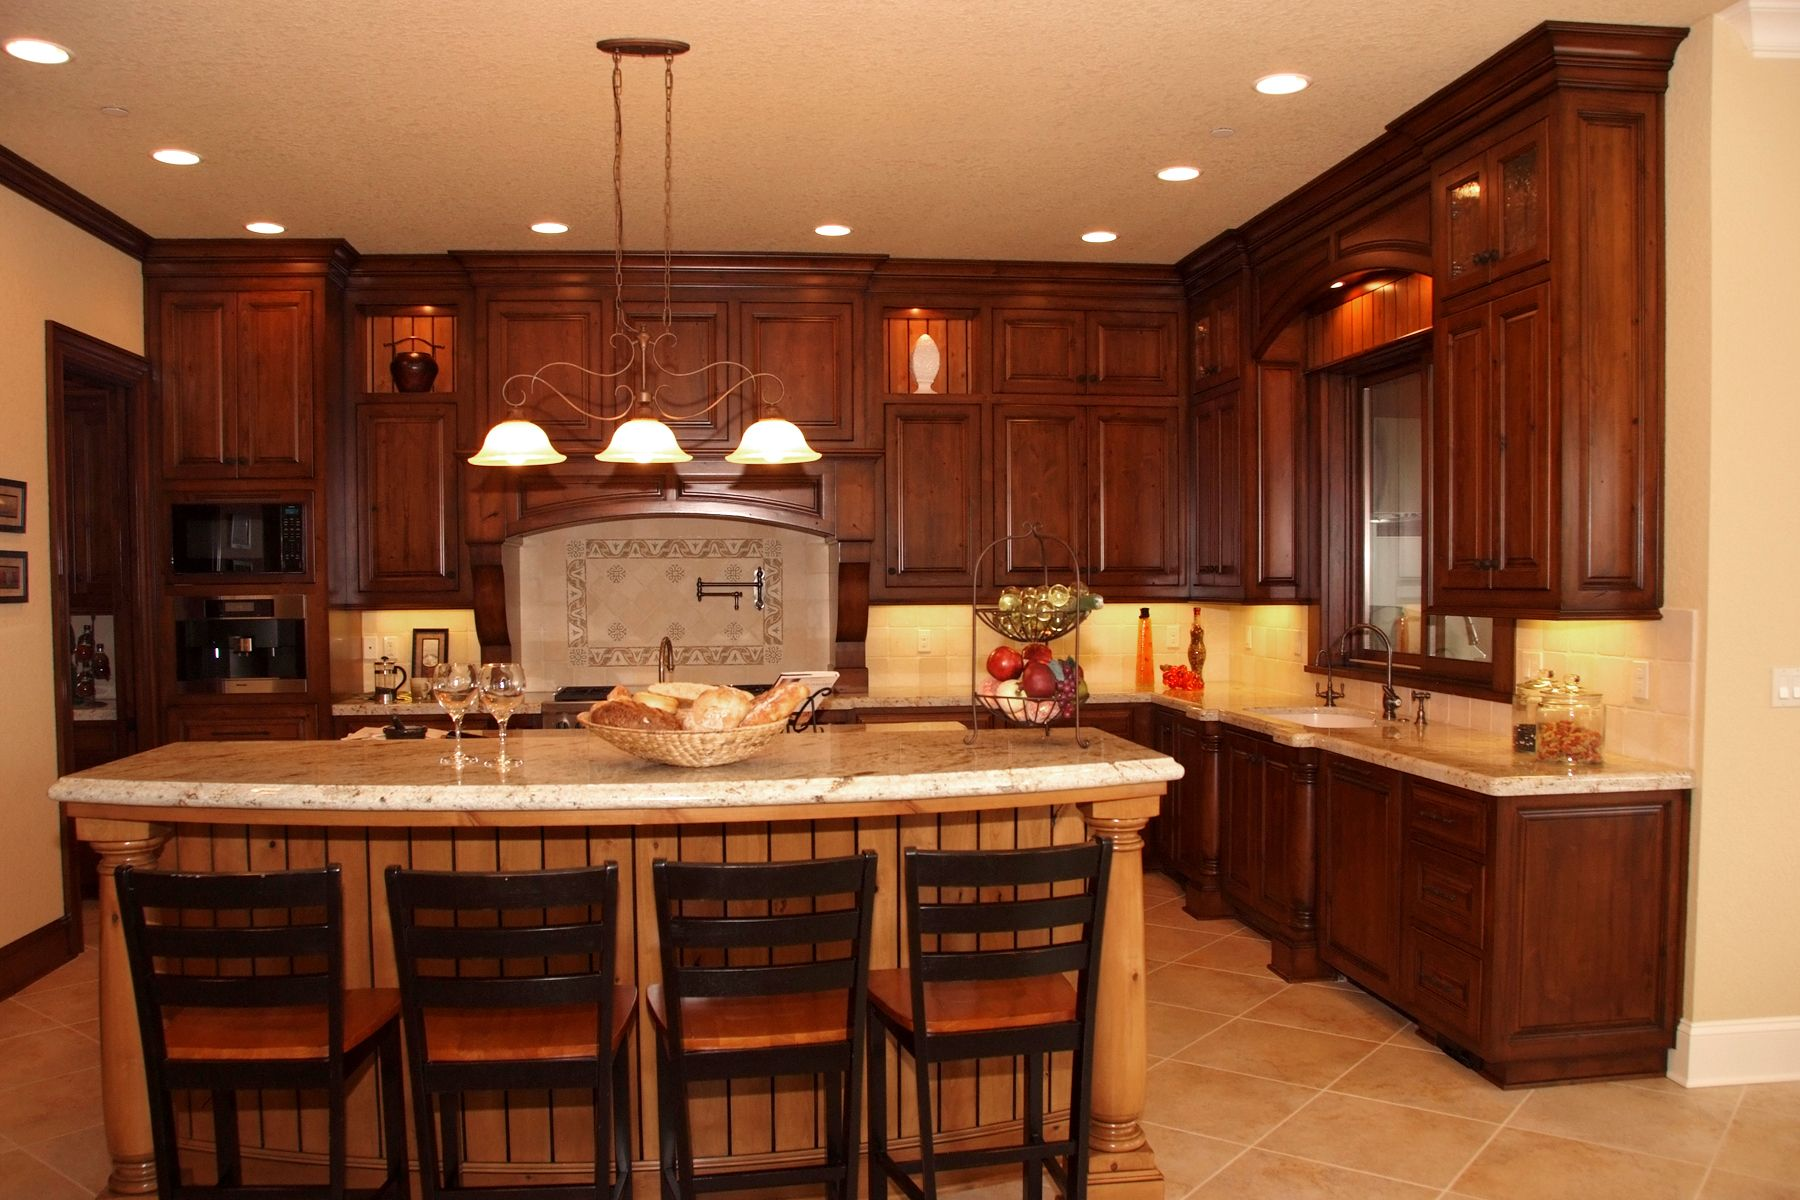 Carey S Custom Woodworking In Wilsonville Or Specializing In Custom Millwork Kitchen Remodel Small Replacement Kitchen Cabinet Doors Custom Kitchen Cabinets